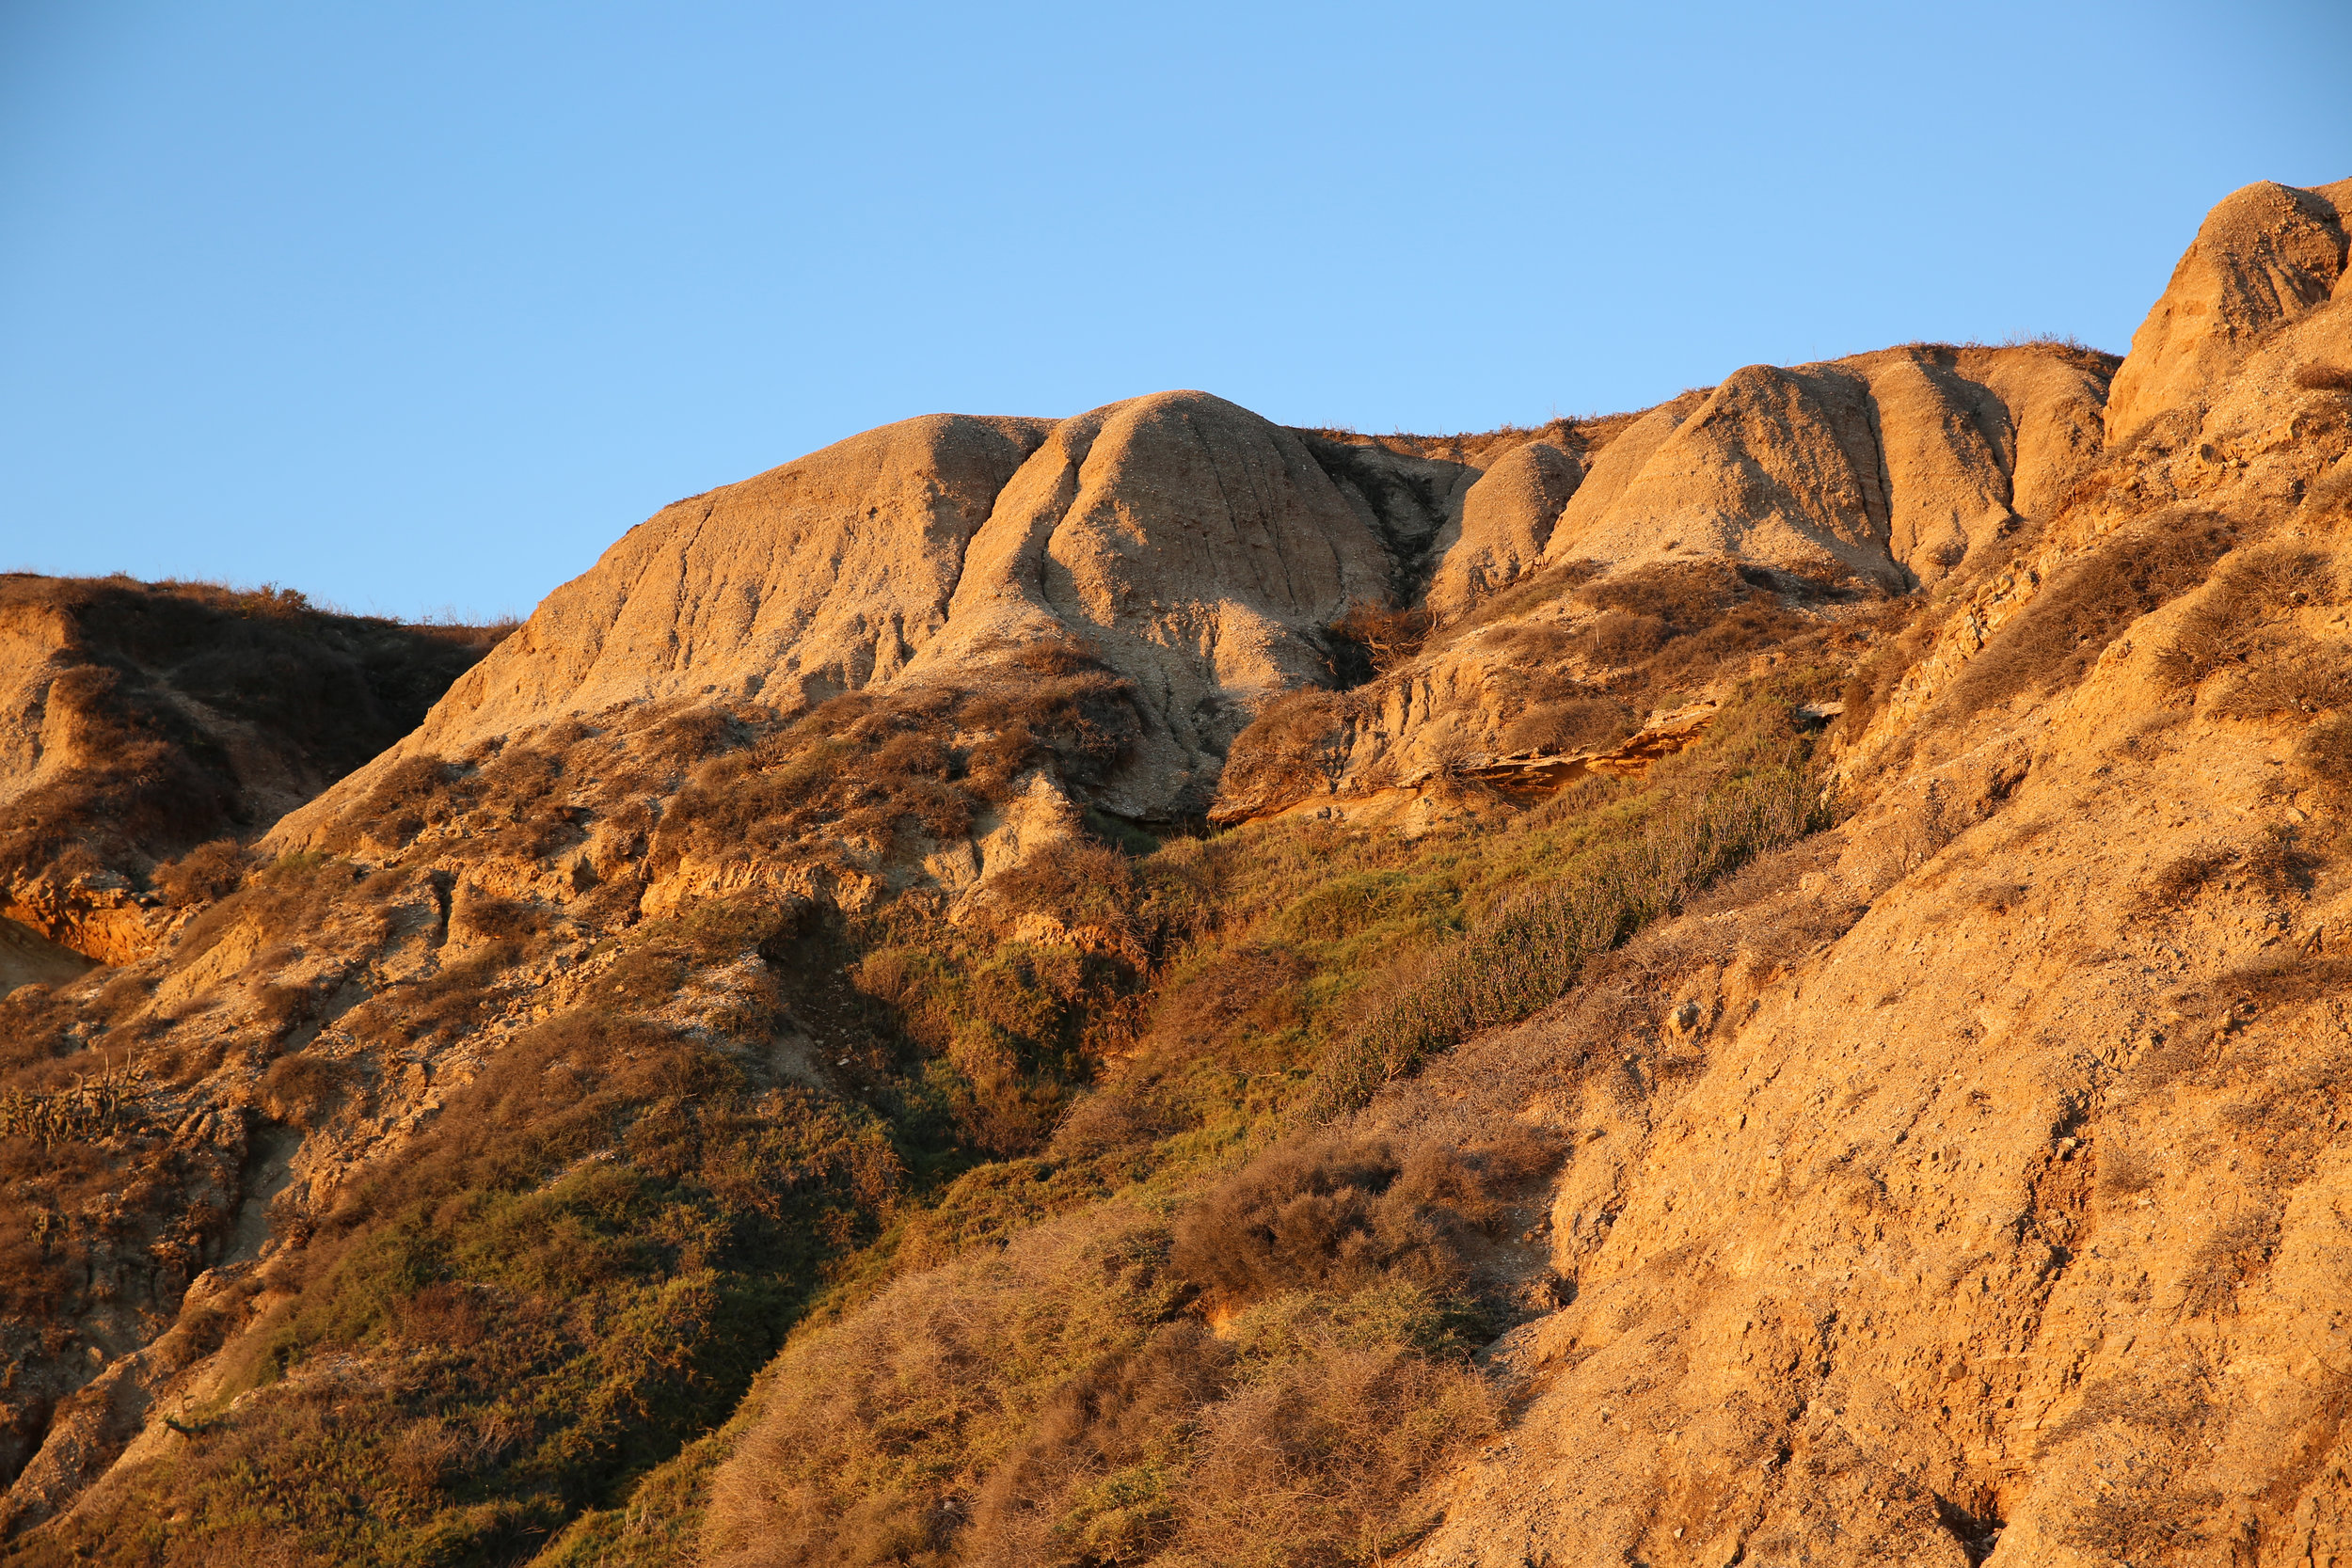 These golden cliffs are filled with native vegetation that sustains wildlife.